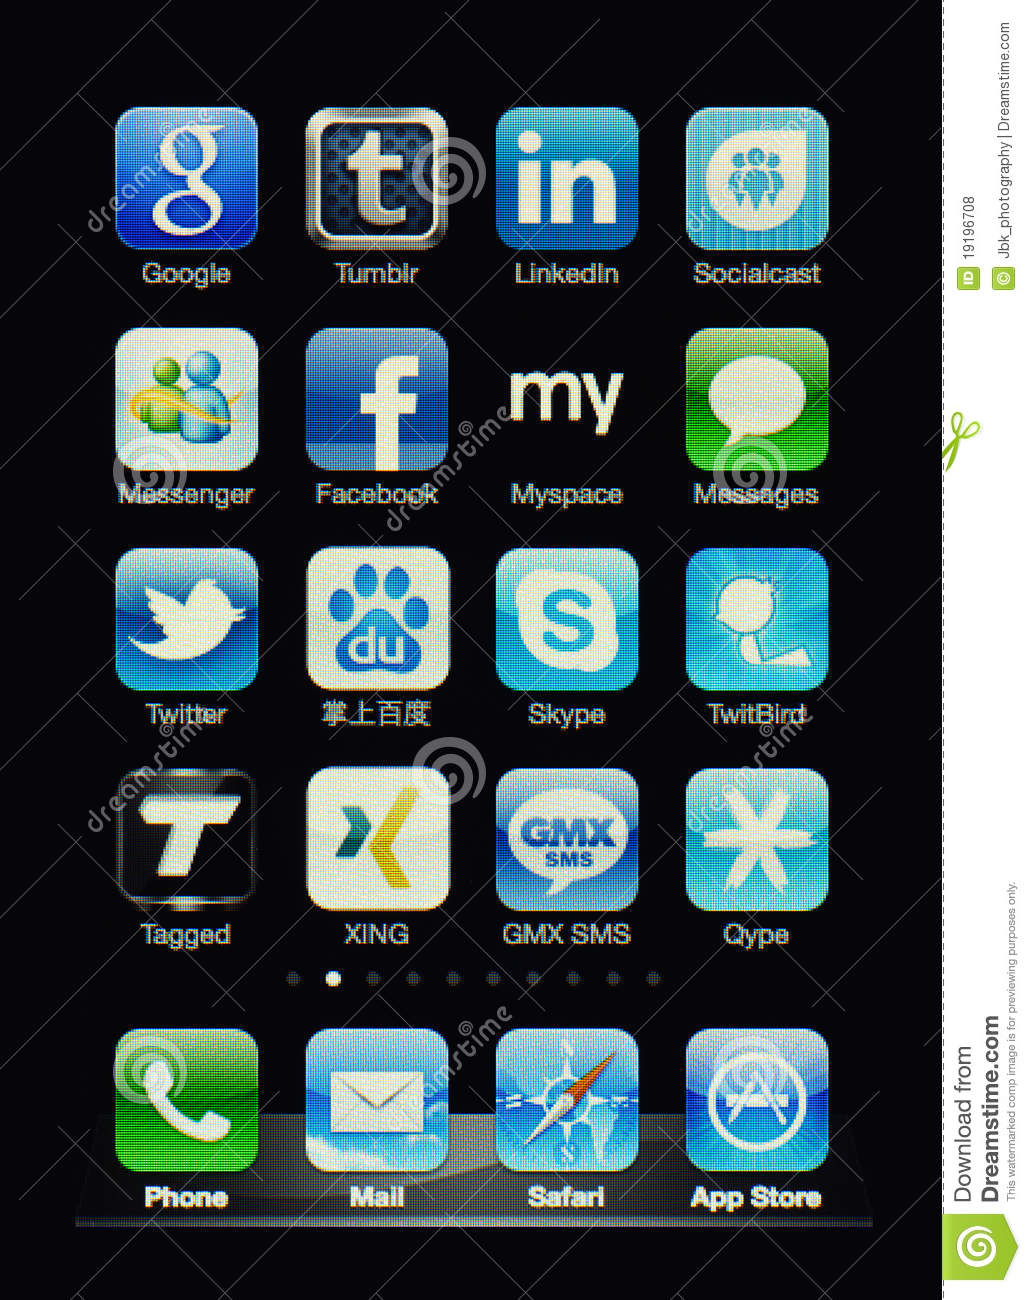 Clipart app for iphone banner Iphone apps clipart - ClipartFest banner